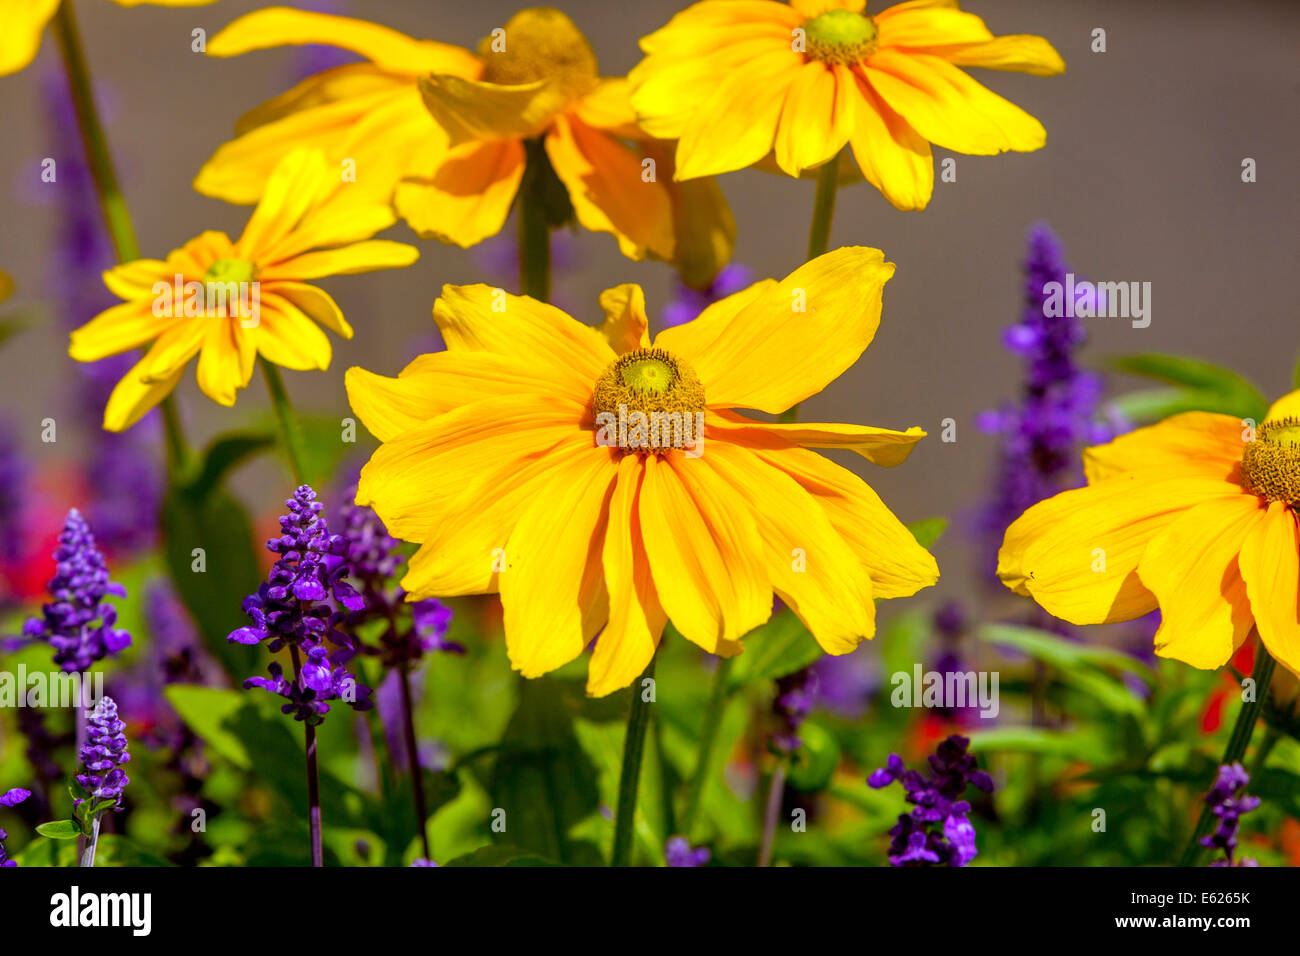 Colorful flower bed of annual flowers rudbeckia hirta salvia stock colorful flower bed of annual flowers rudbeckia hirta salvia spendens izmirmasajfo Image collections